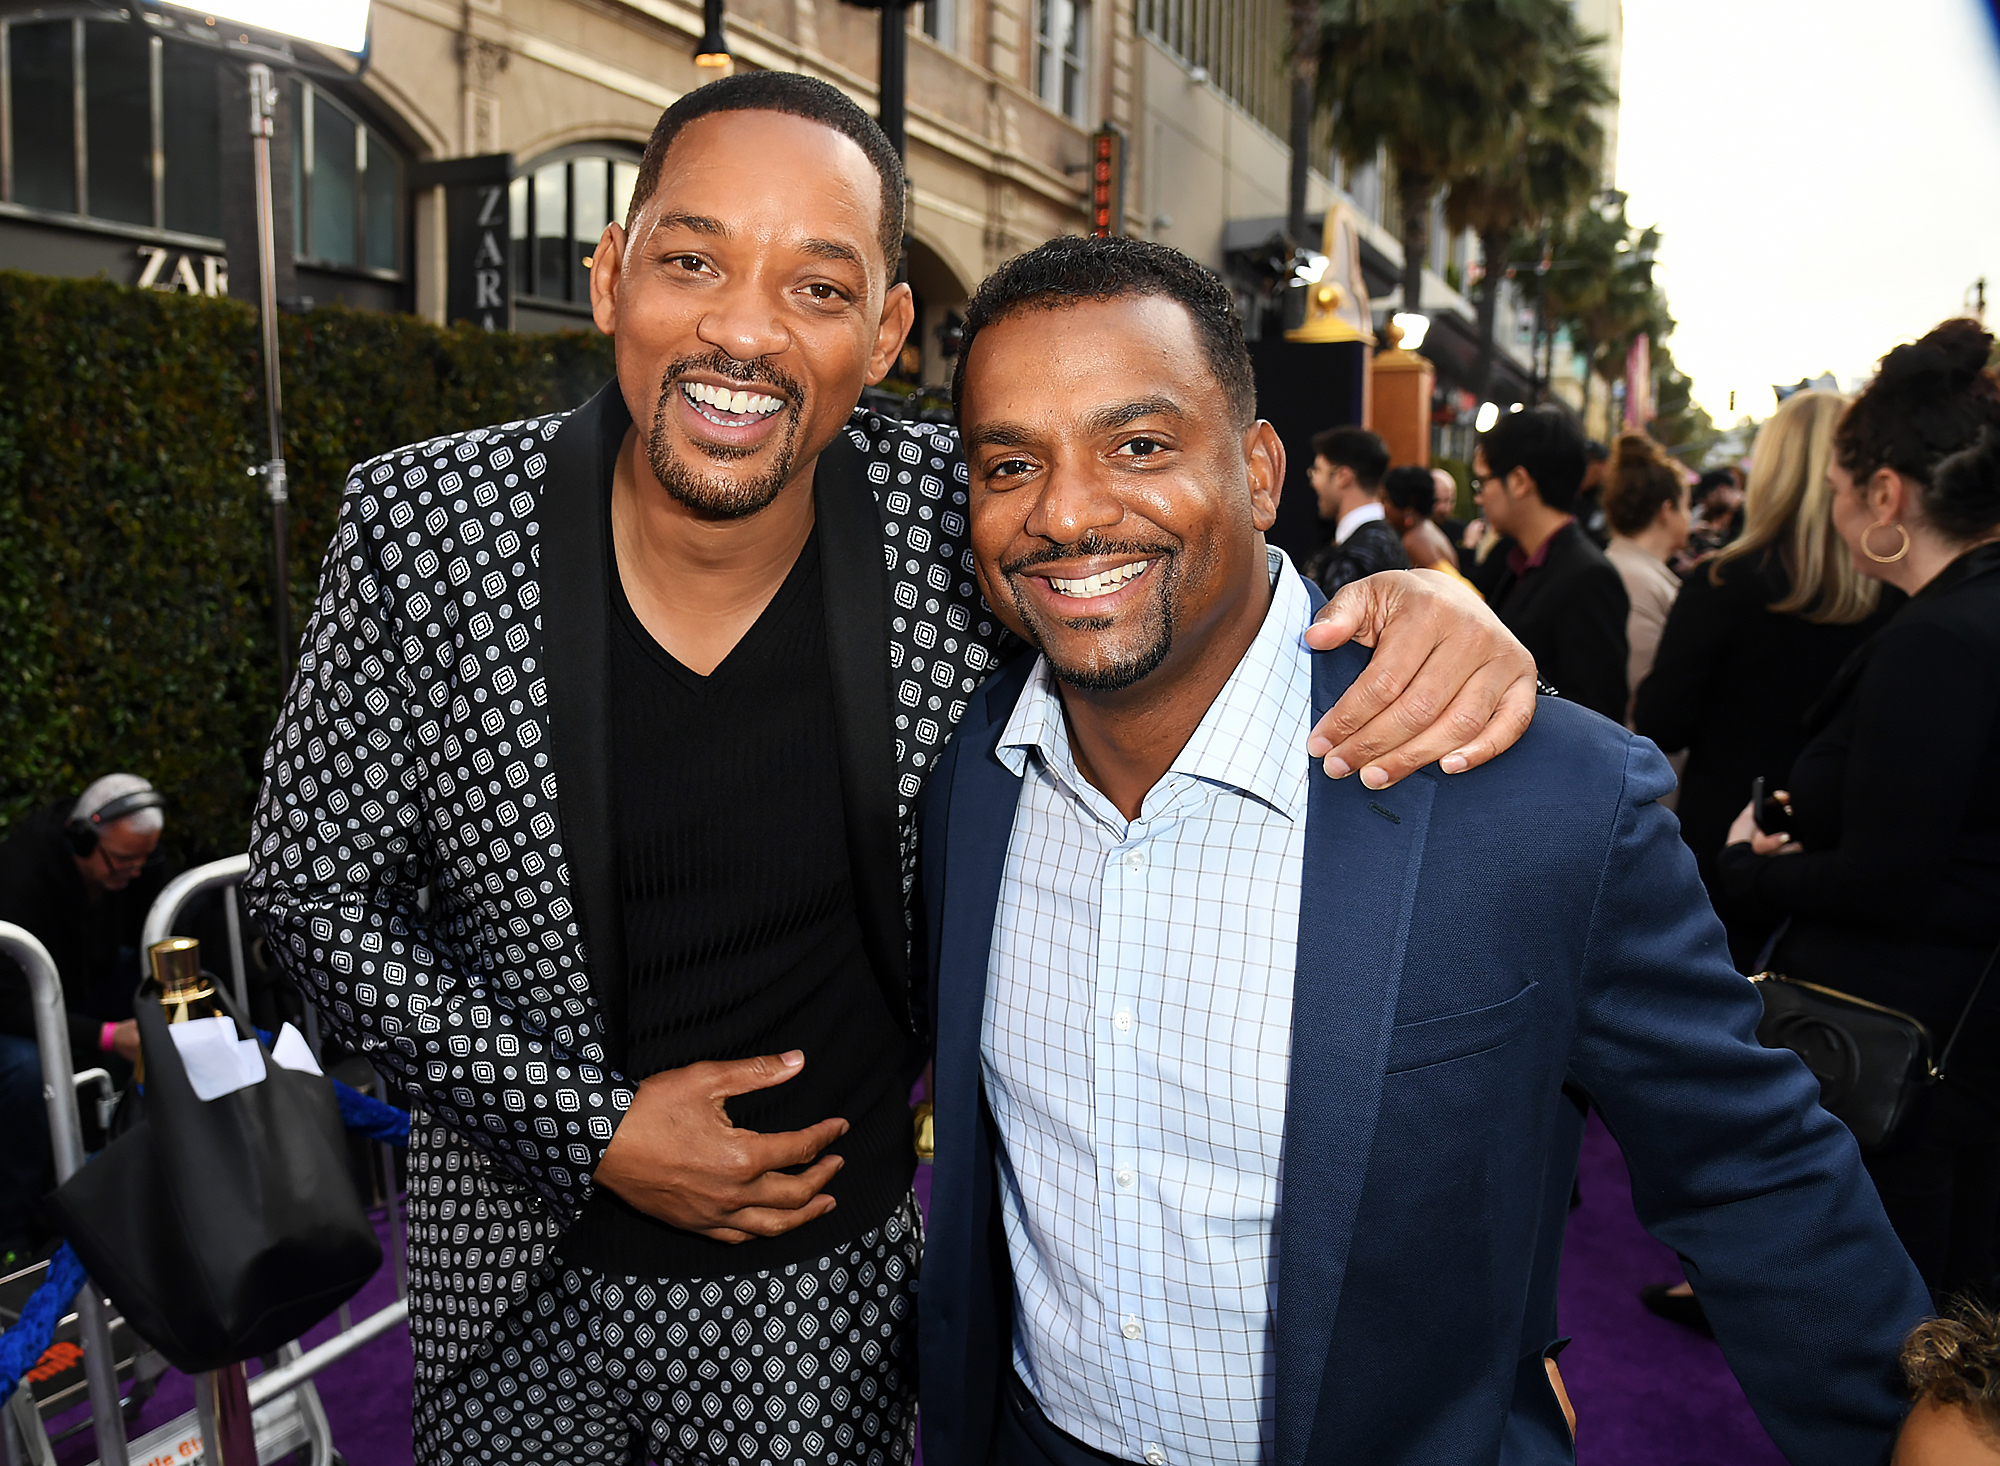 Will-Smith-and-Alfonso-Ribeiro-Aladdin-premiere - Will's former Fresh Prince of Bel-Air costar Alfonso Ribeiro attended the premiere with his 5-year-old son, Alfonso Jr.